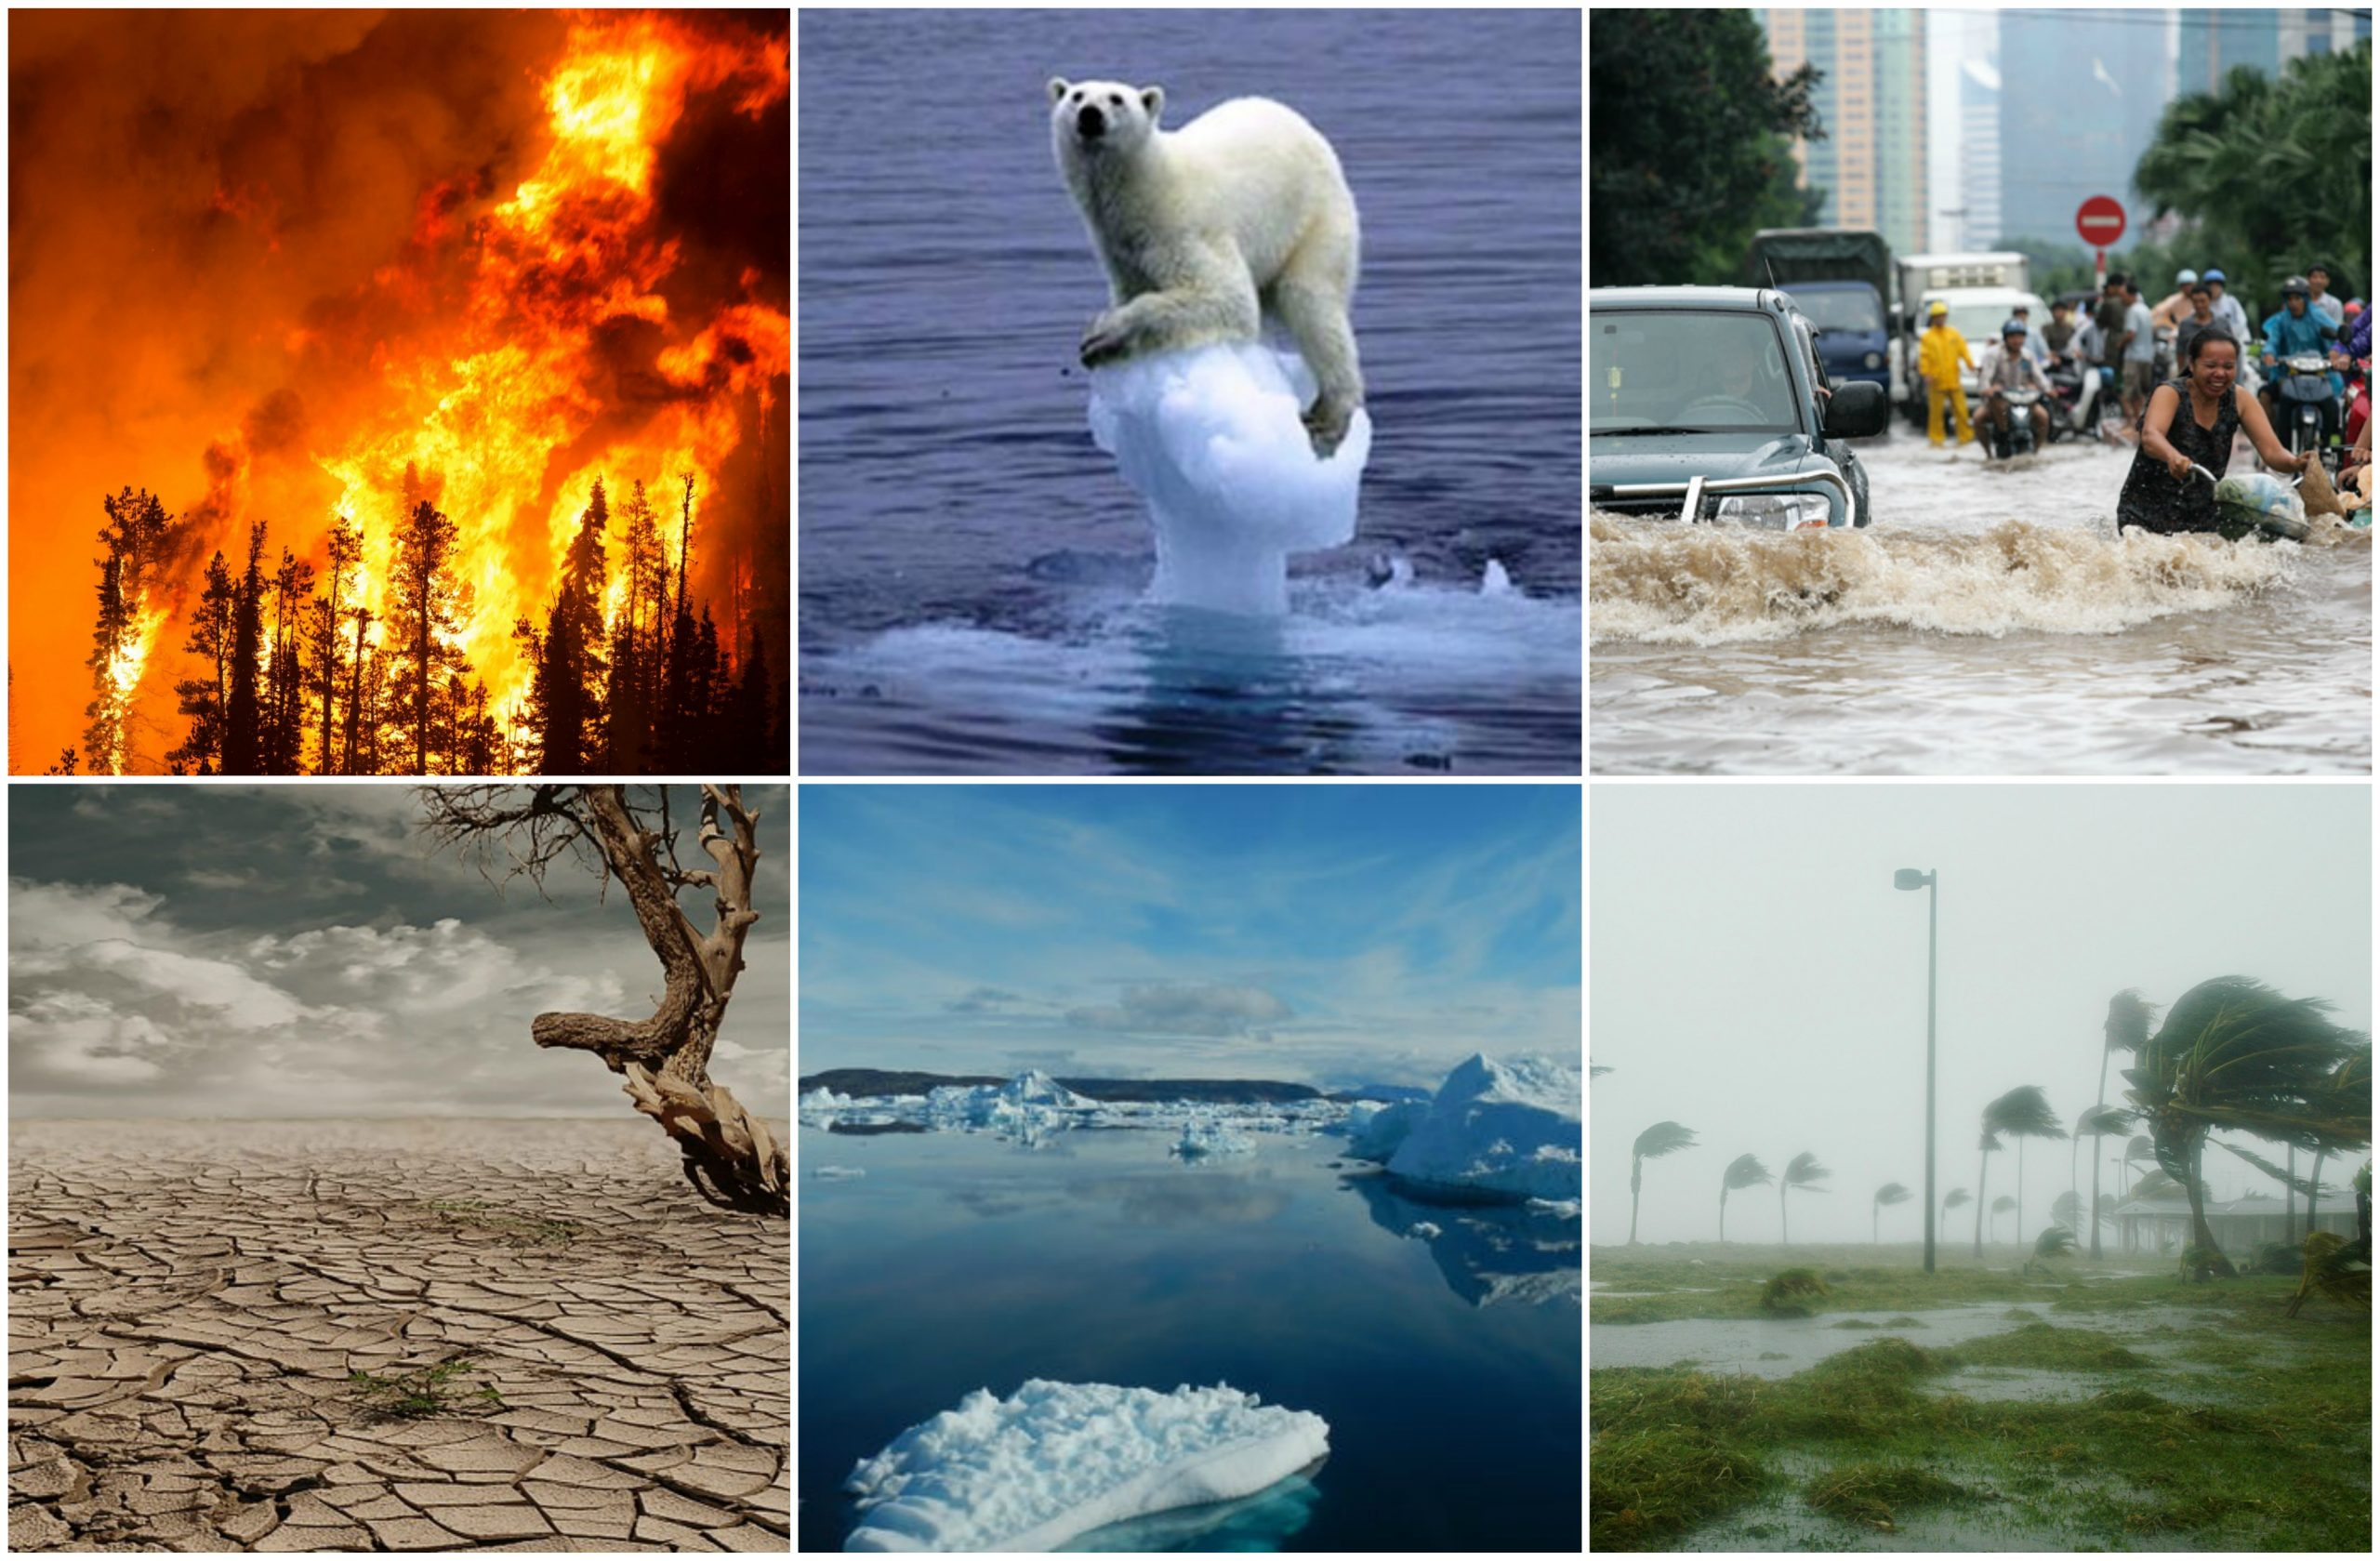 IPCC Report – Reminder of an Impending Climate Catastrophe